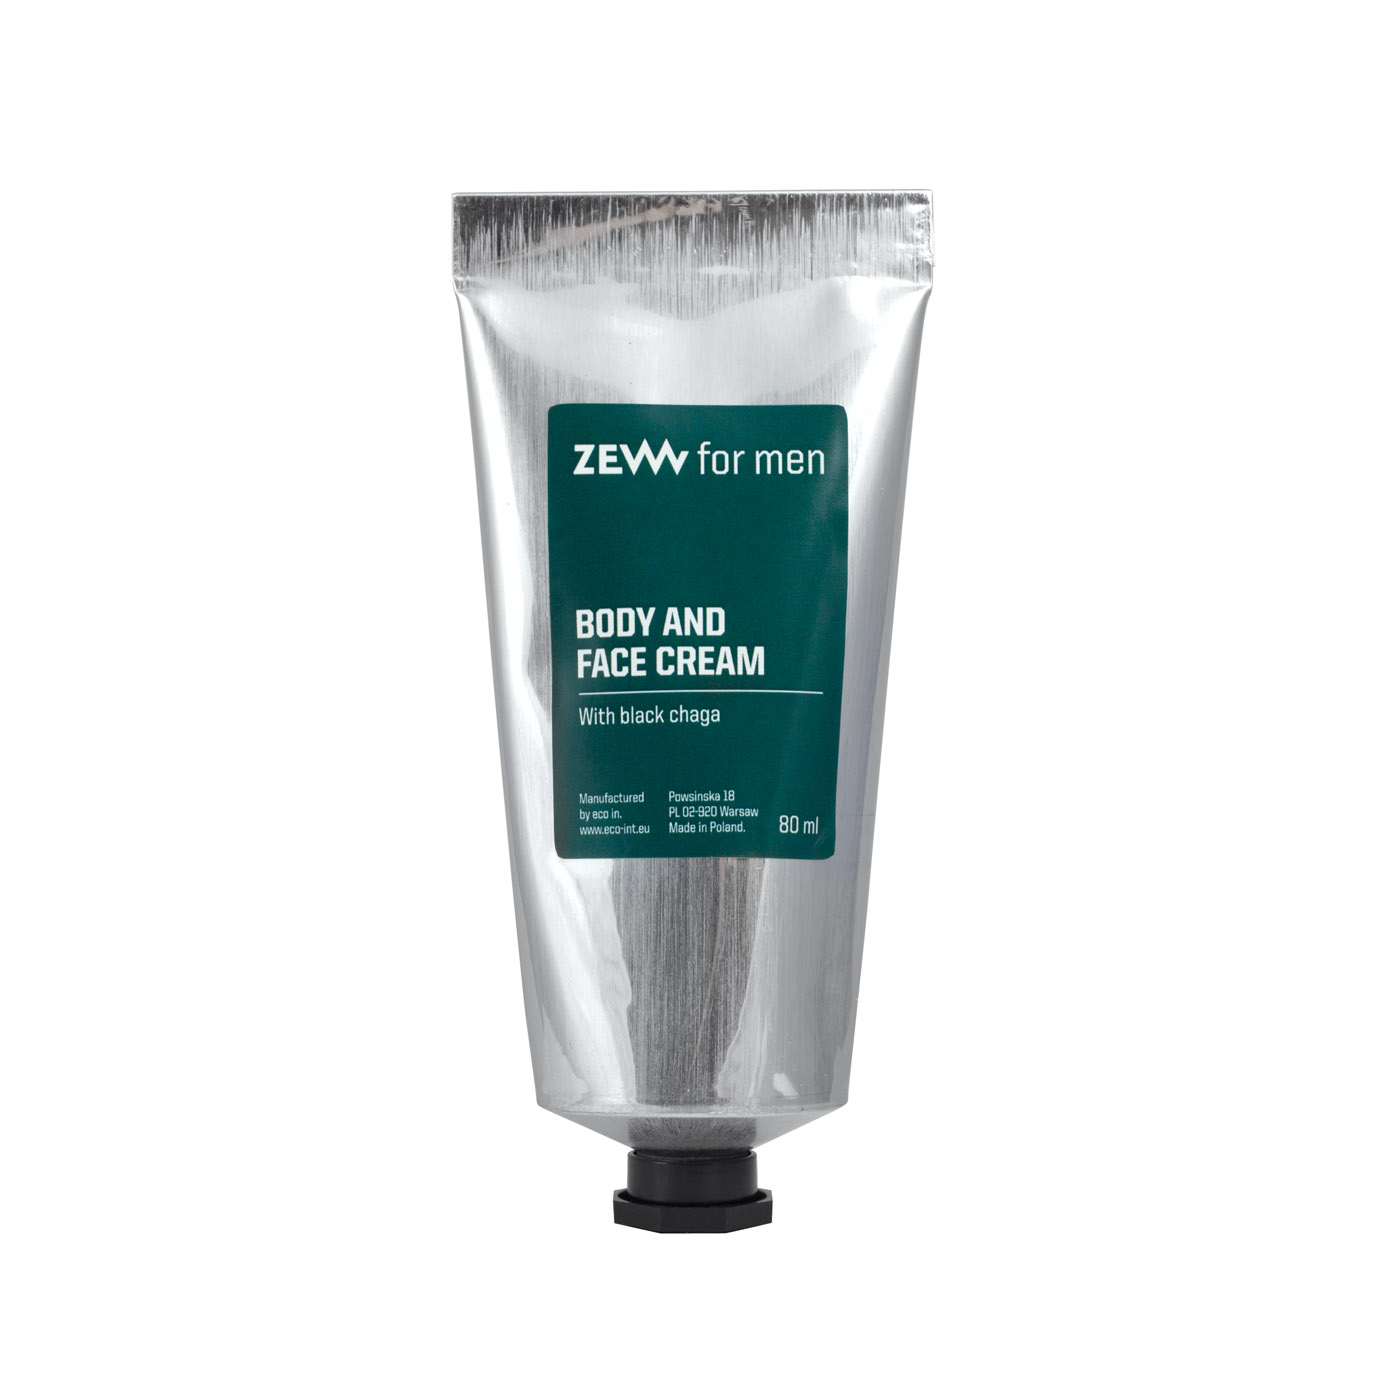 ZEW for men Face and Body Cream - krém na tvár a telo s hubou chaga, 80 ml